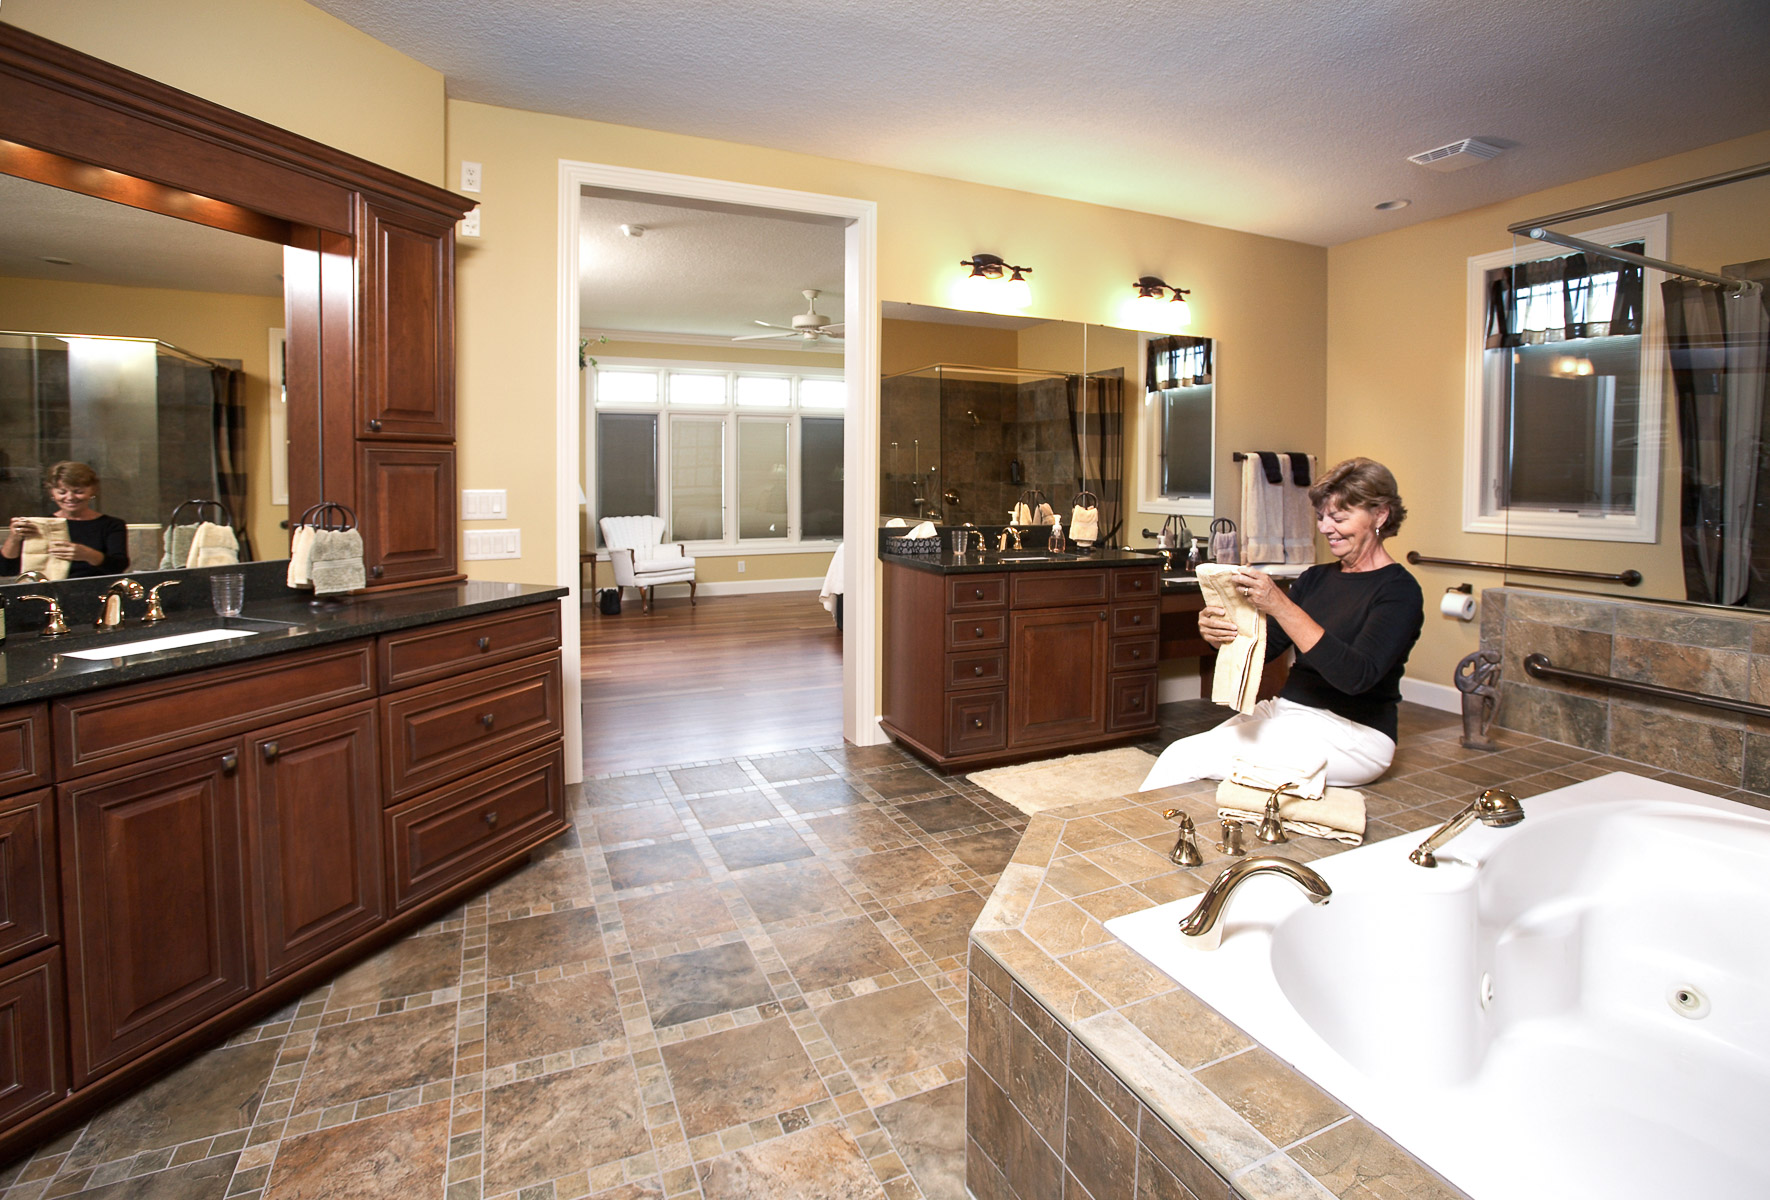 Bathroom Design Quad Cities residential architecture interior - barkley commercial photography